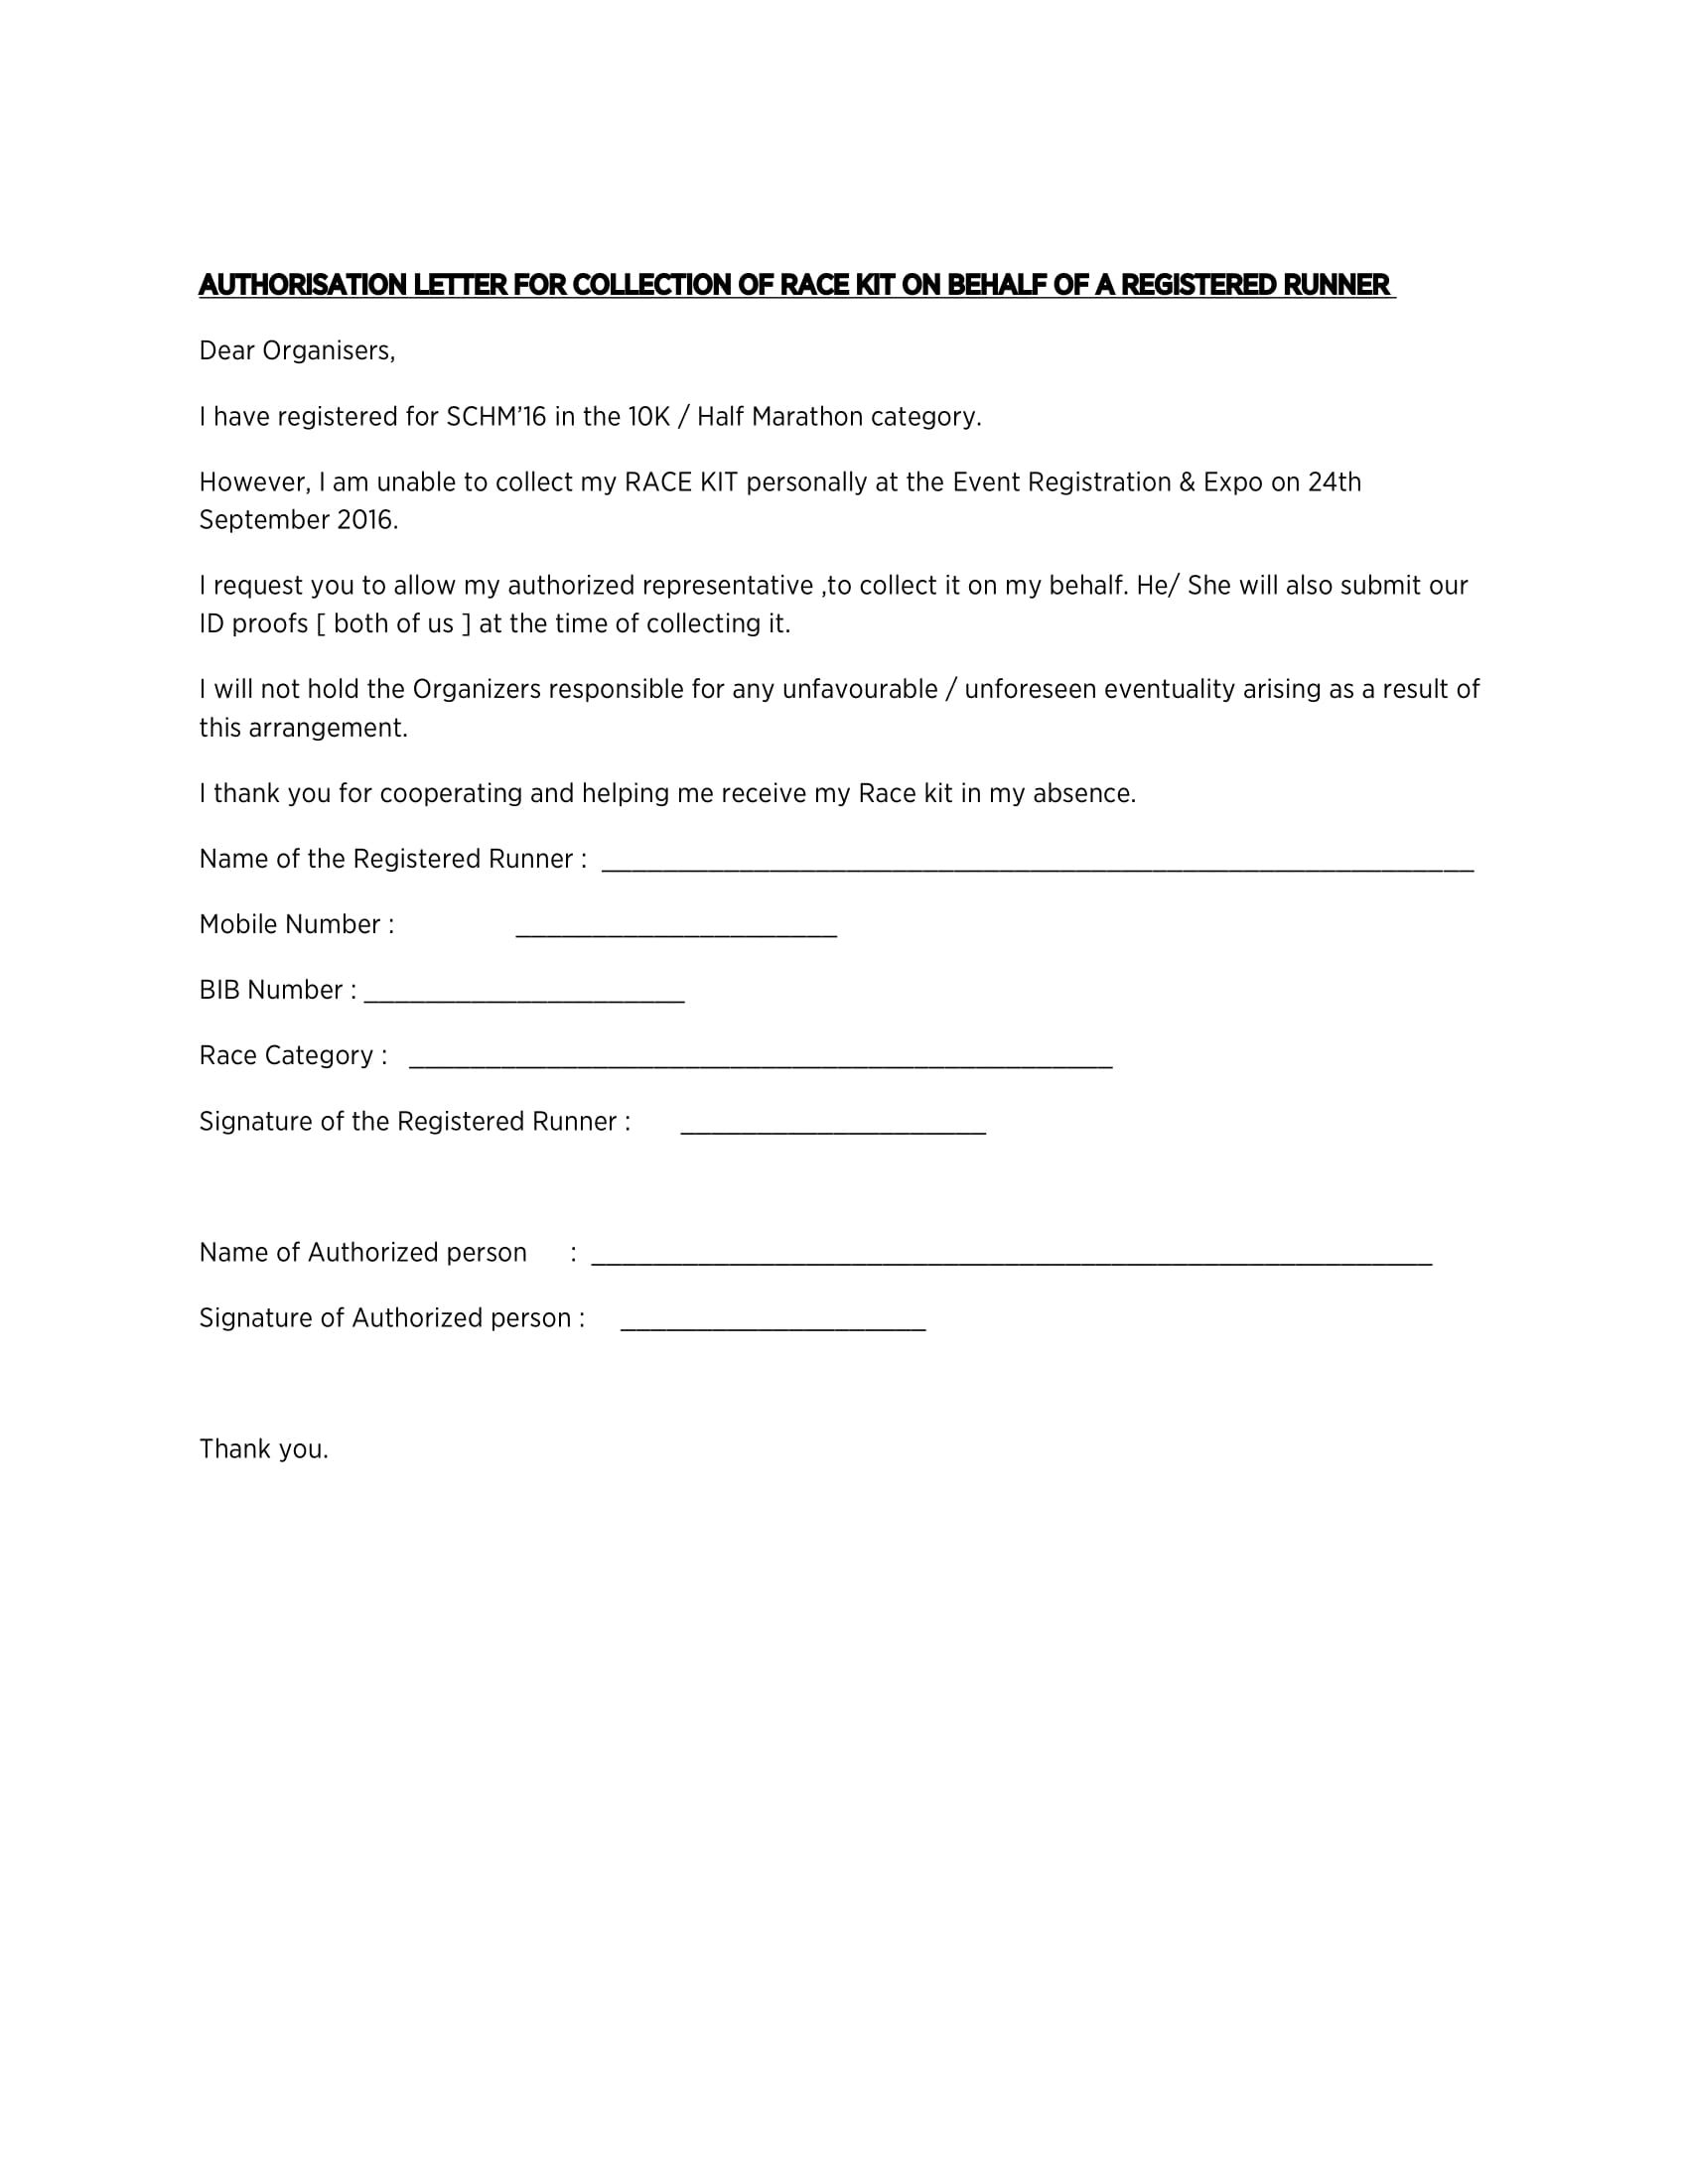 authorization letter to collect receive race kit in behalf of registered runner